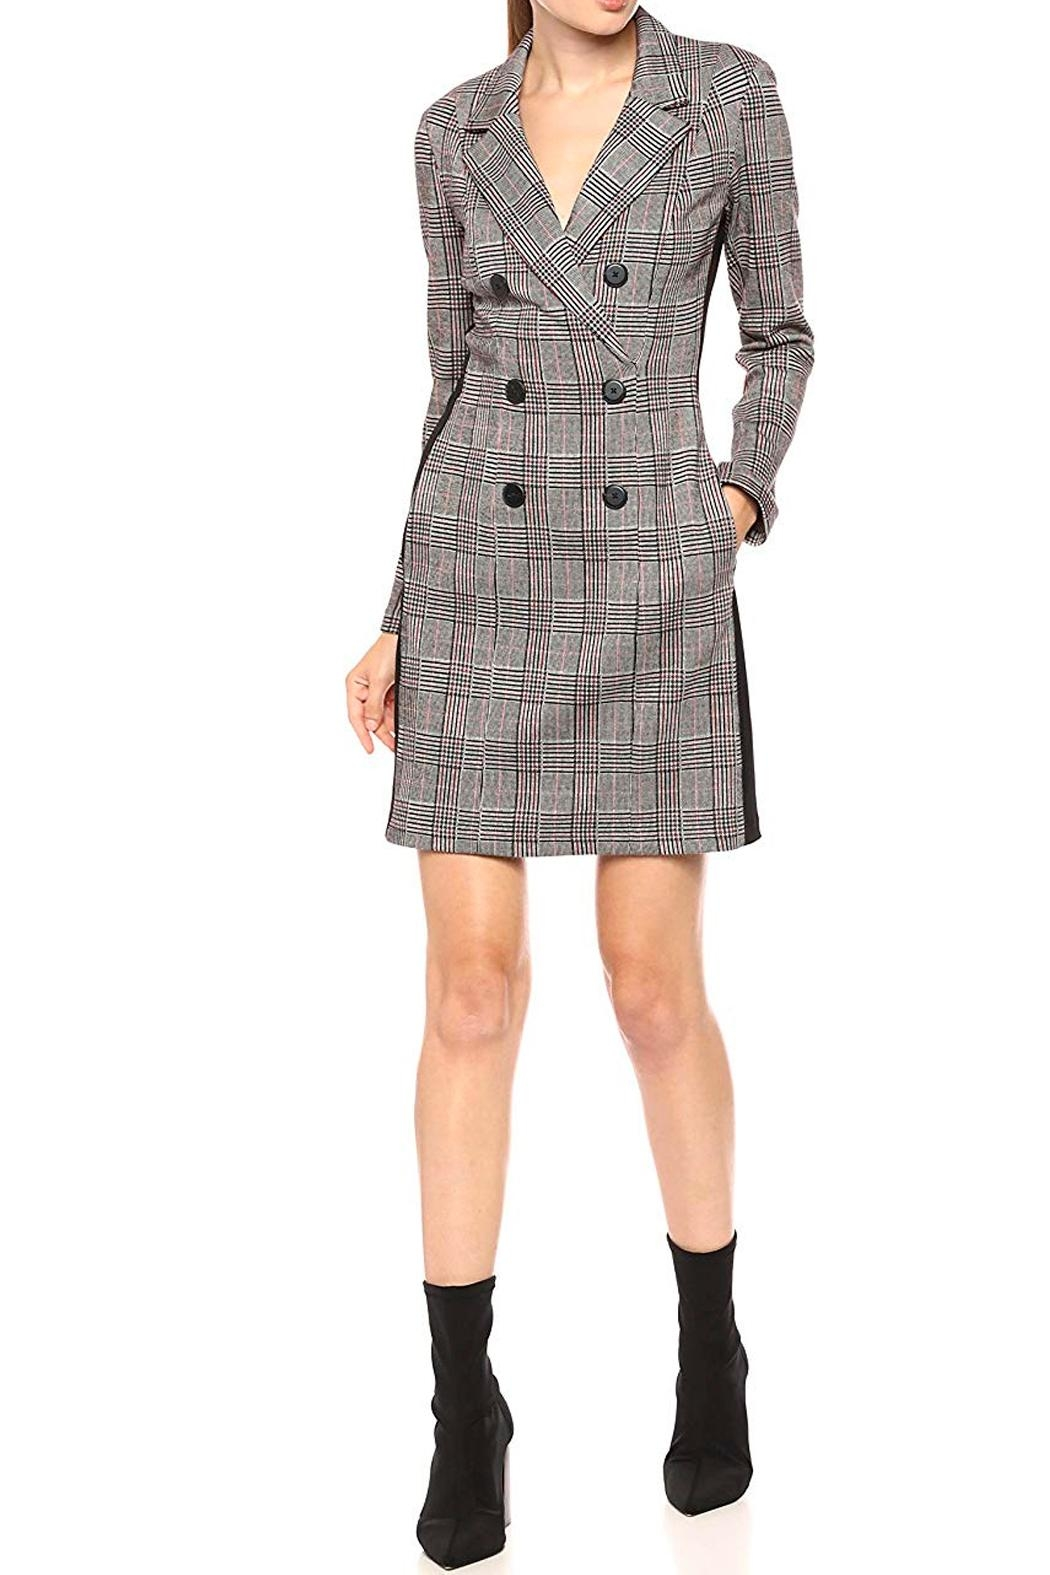 Donna Morgan Coat Dress D6484m - Front Cropped Image